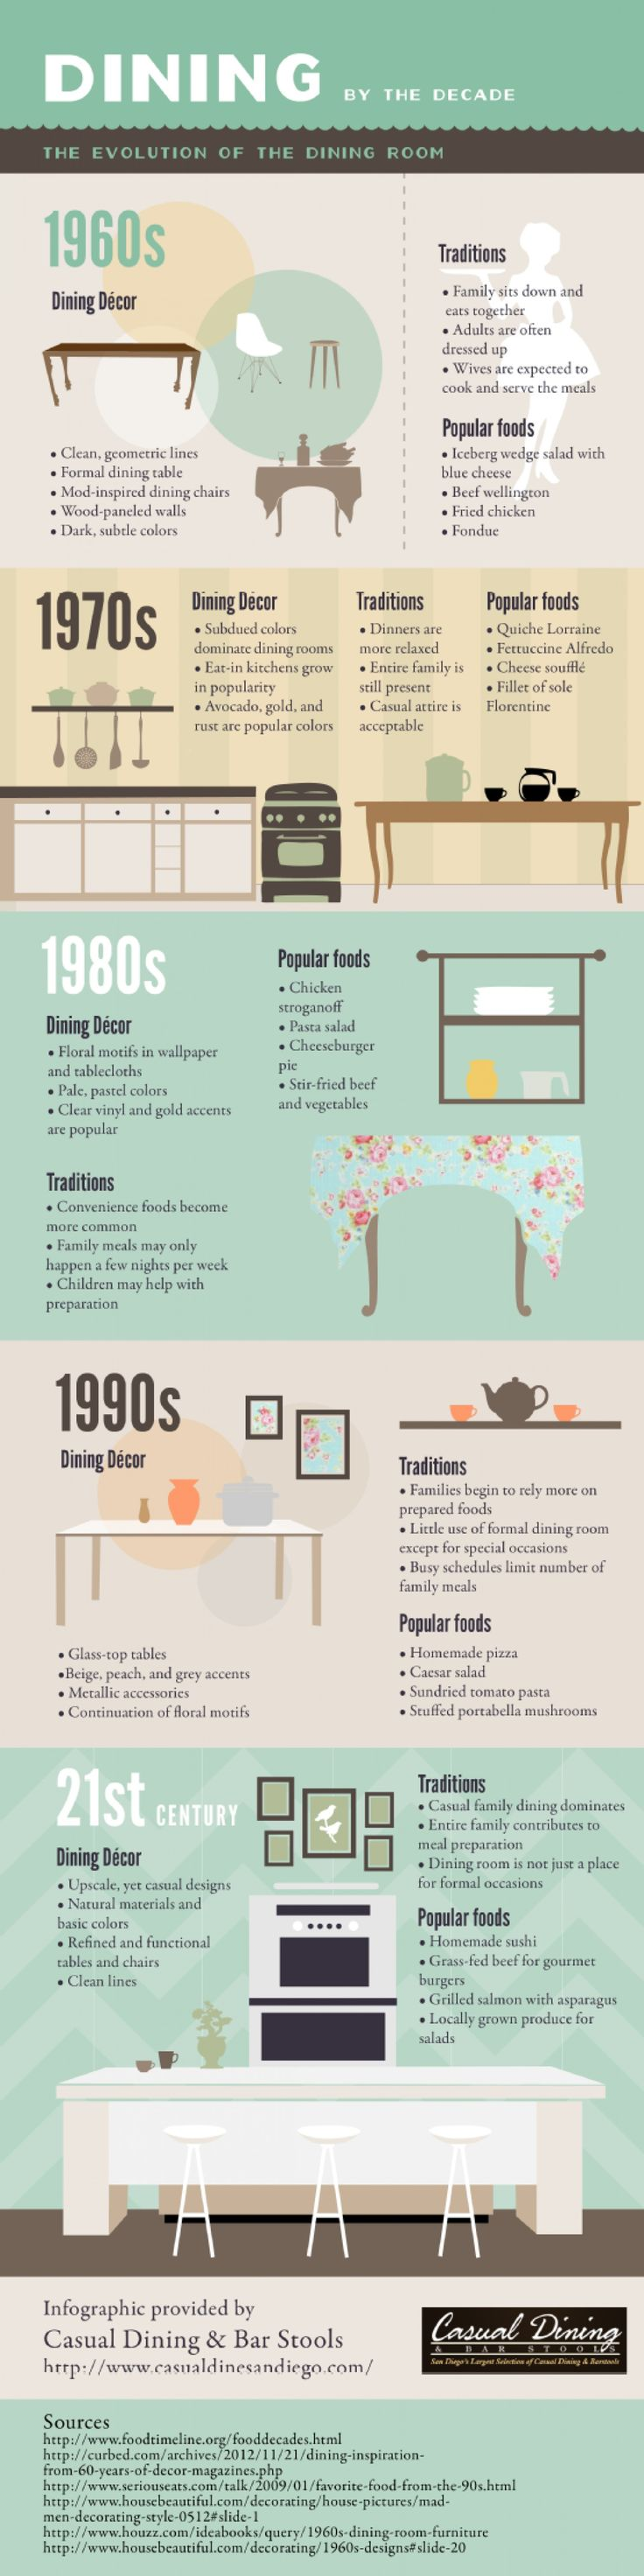 Dining By The Decade Infographic